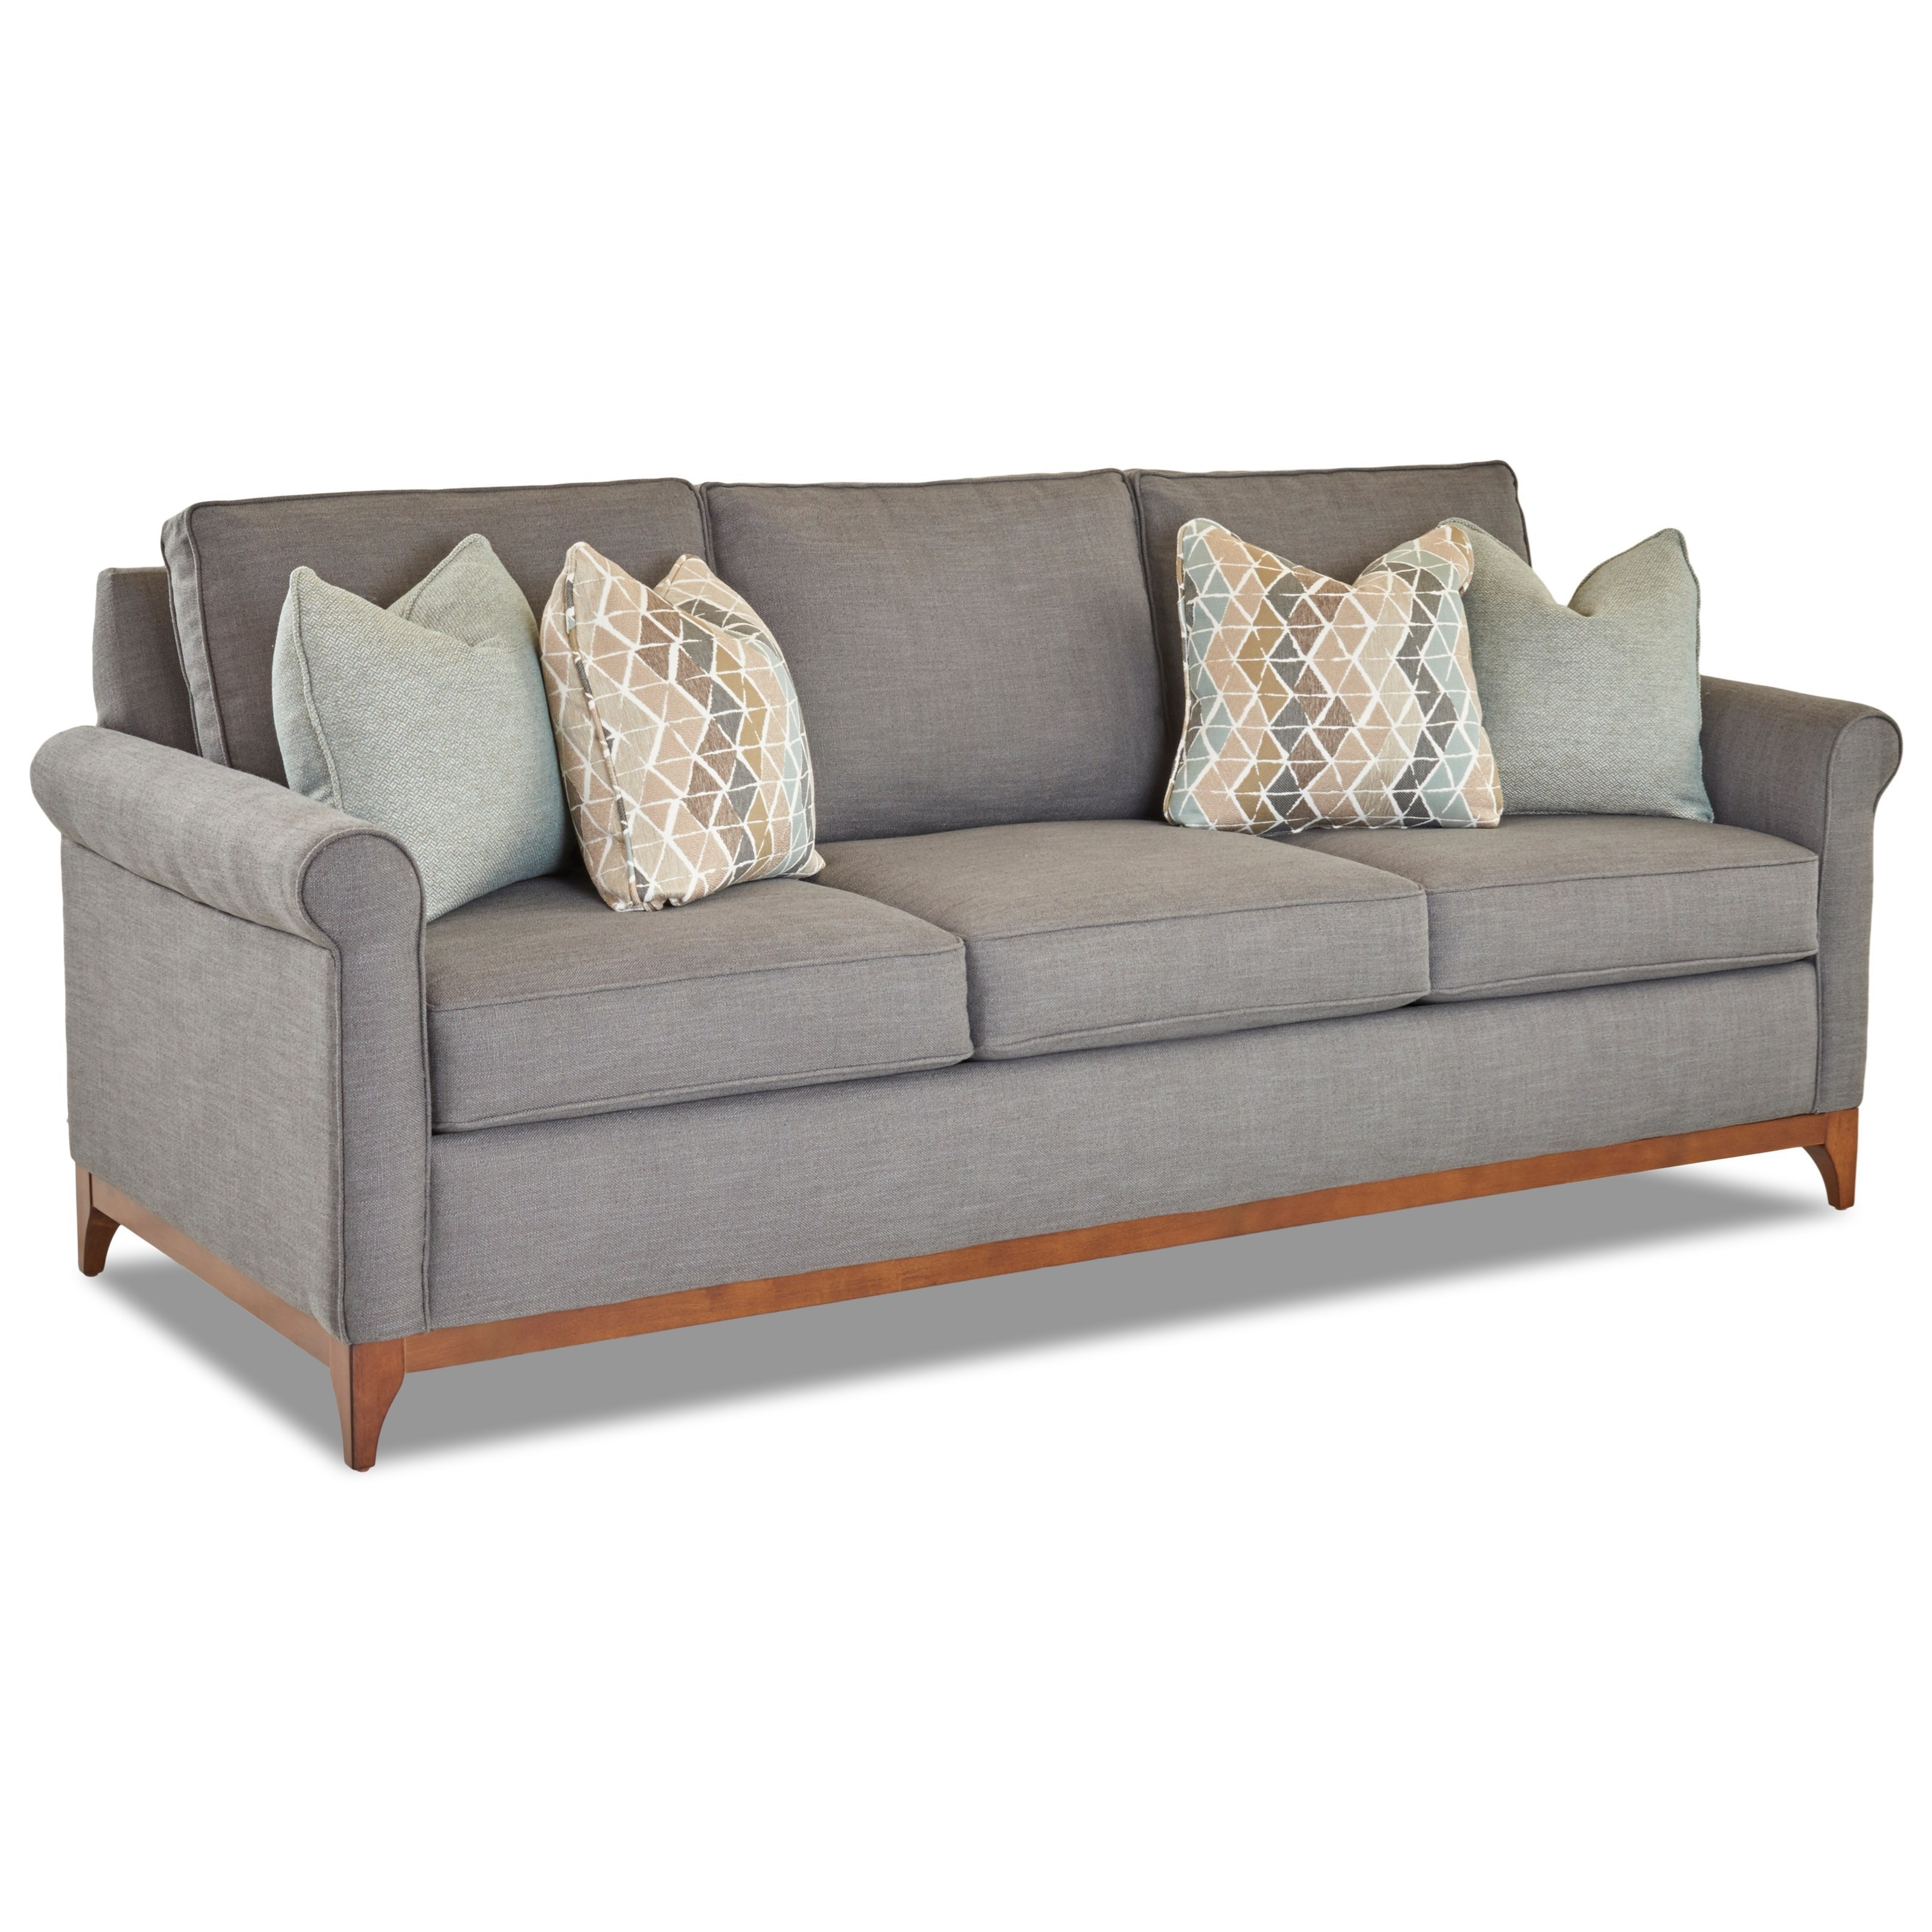 Klaussner Beason Transitional Sofa With Exposed Wood Trim